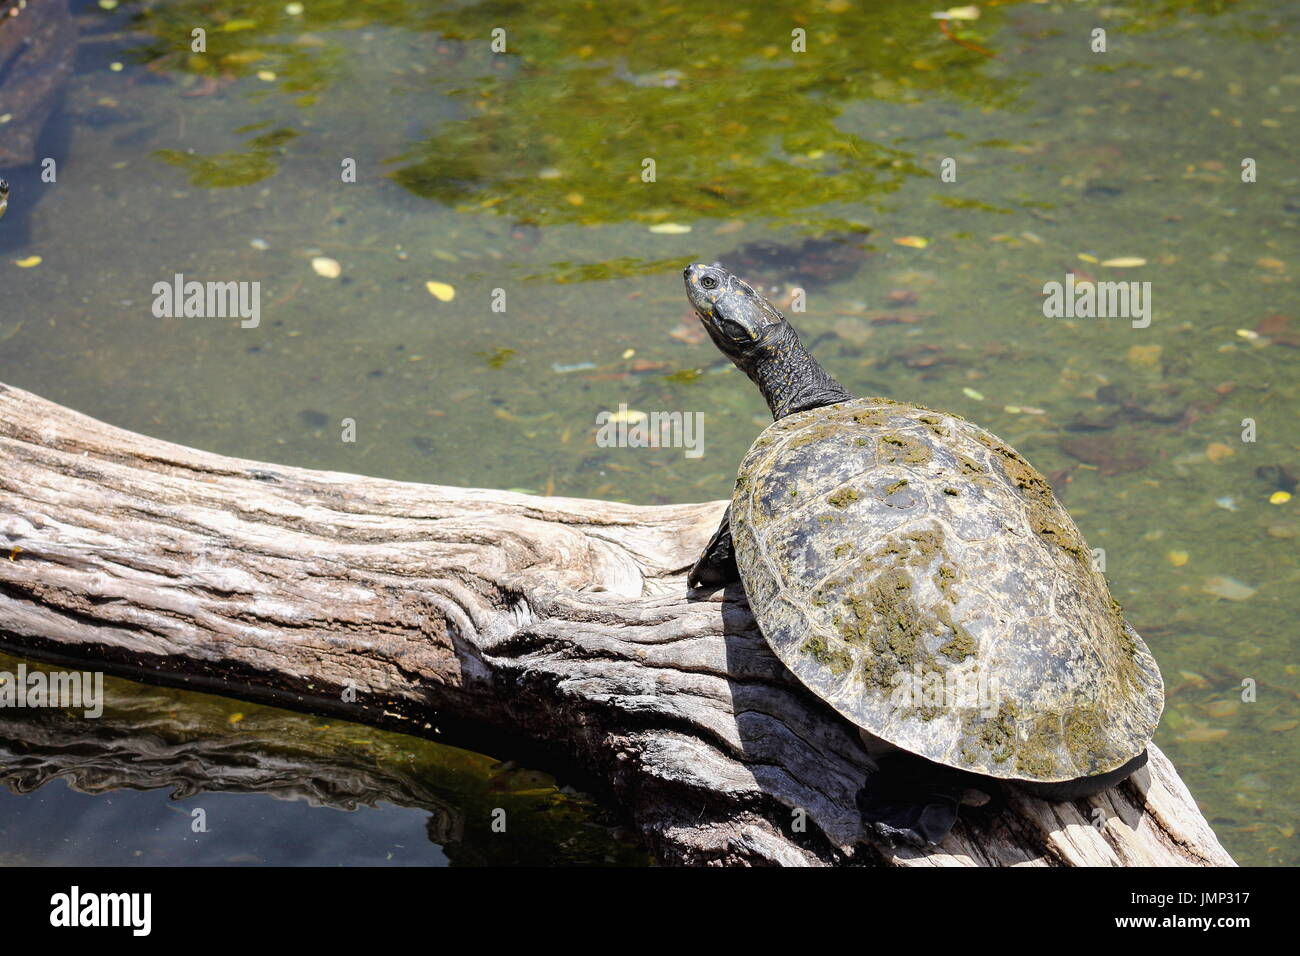 Yellow-spotted Amazon turtle  - Podocnemis unifilis - Stock Image